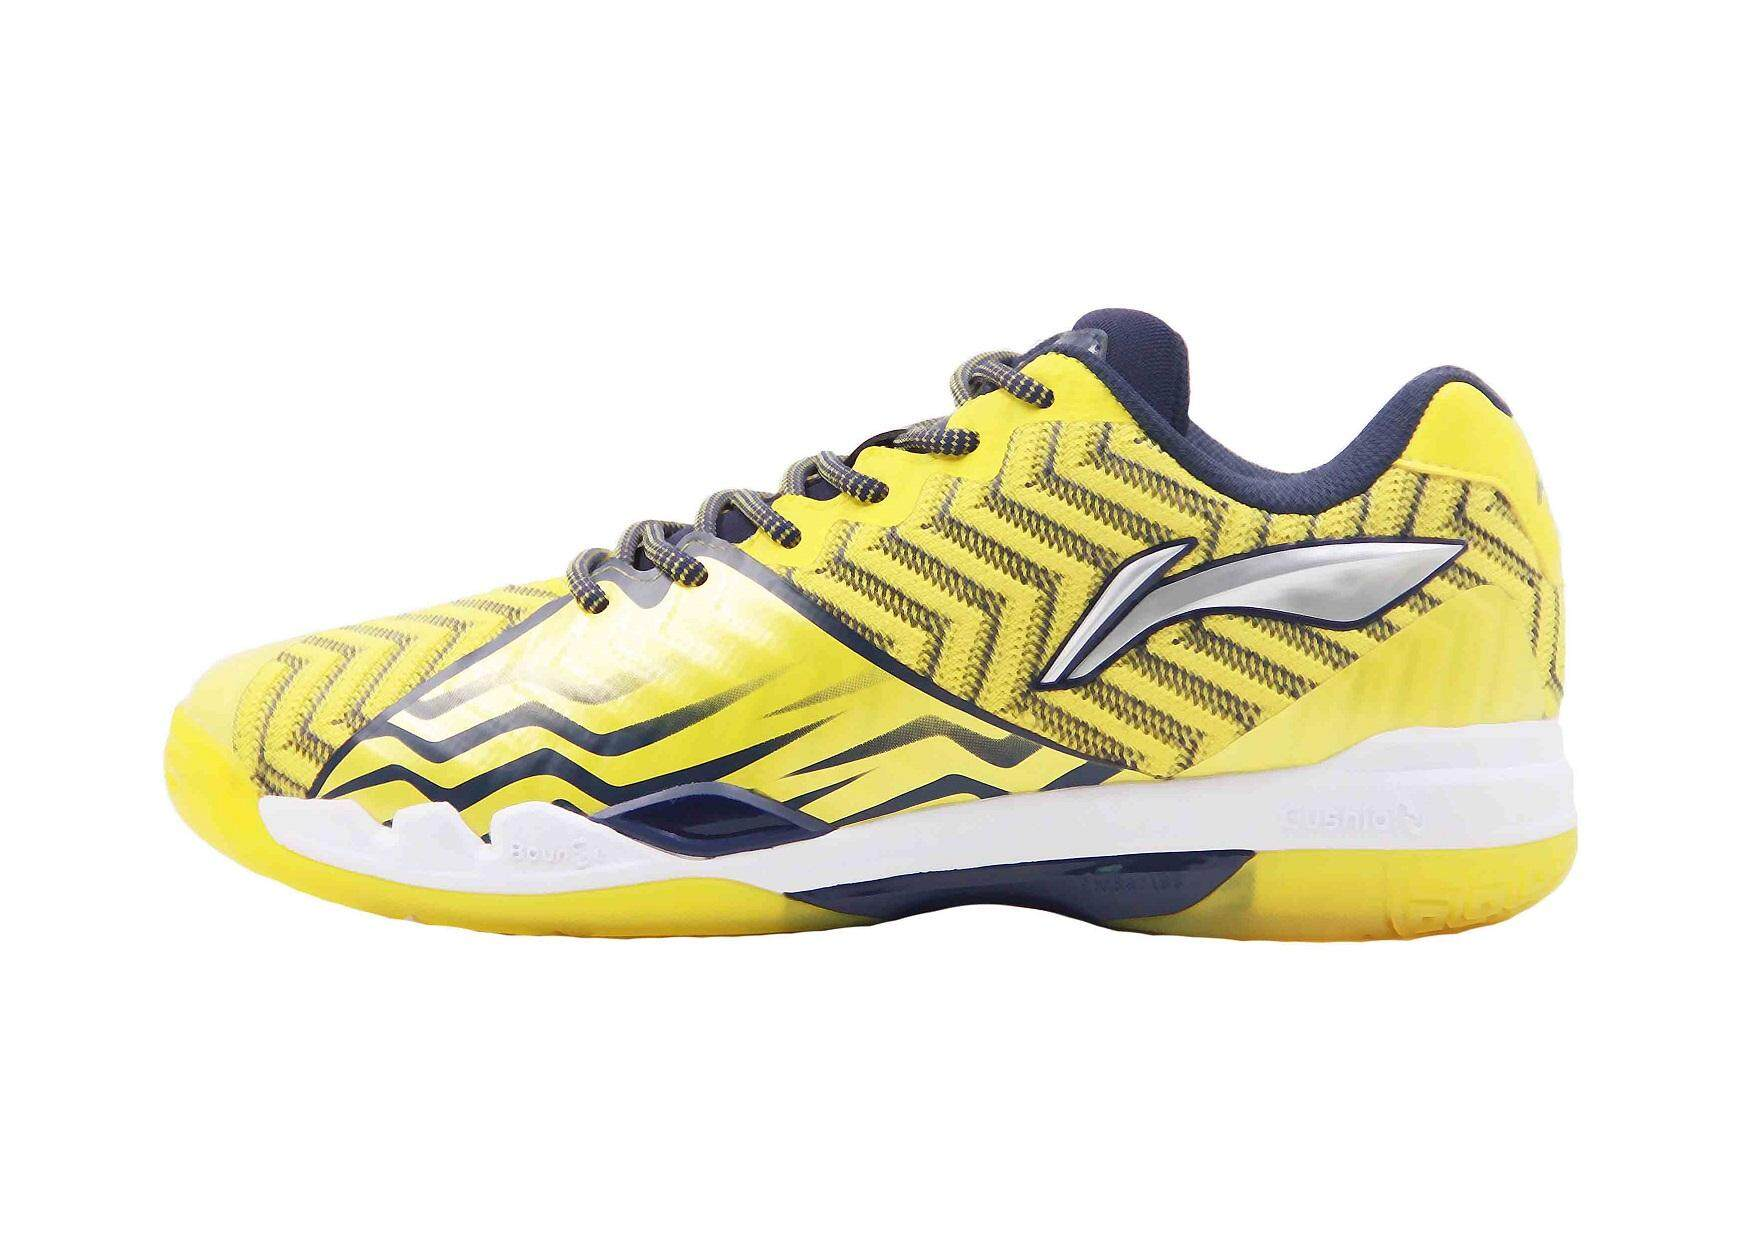 Li-Ning Sonic Boom Men's Badminton Shoes AYAN019